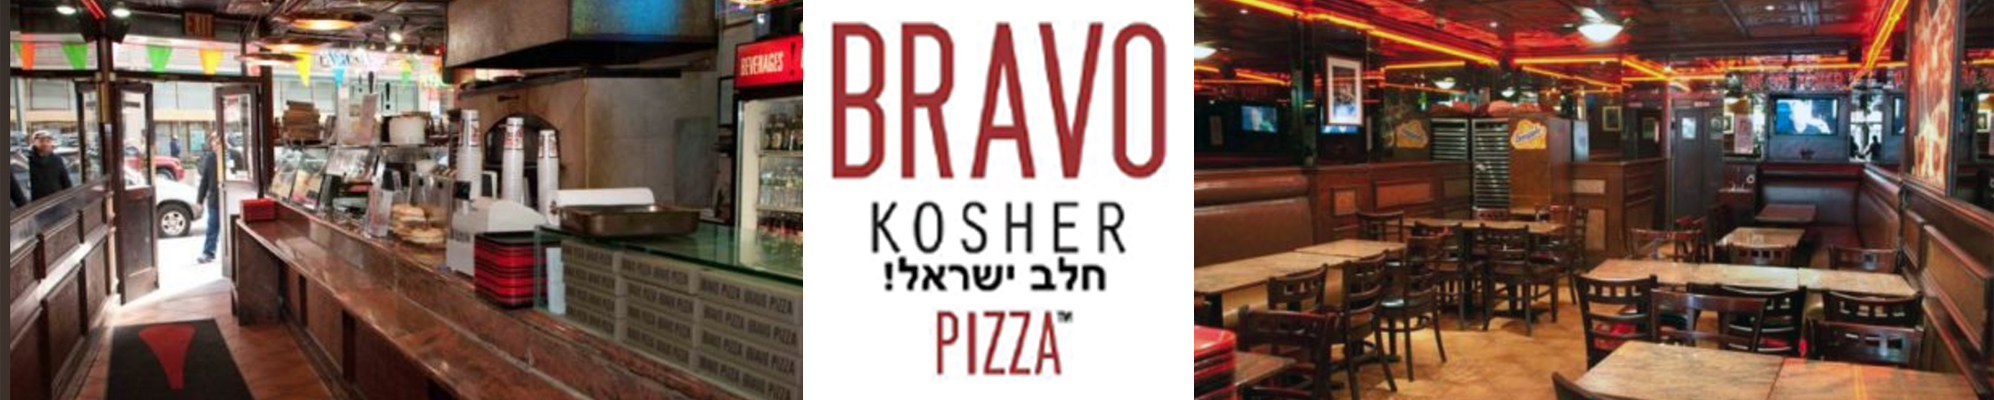 Kosher Food Online New York, NY | Bravo Kosher Pizza